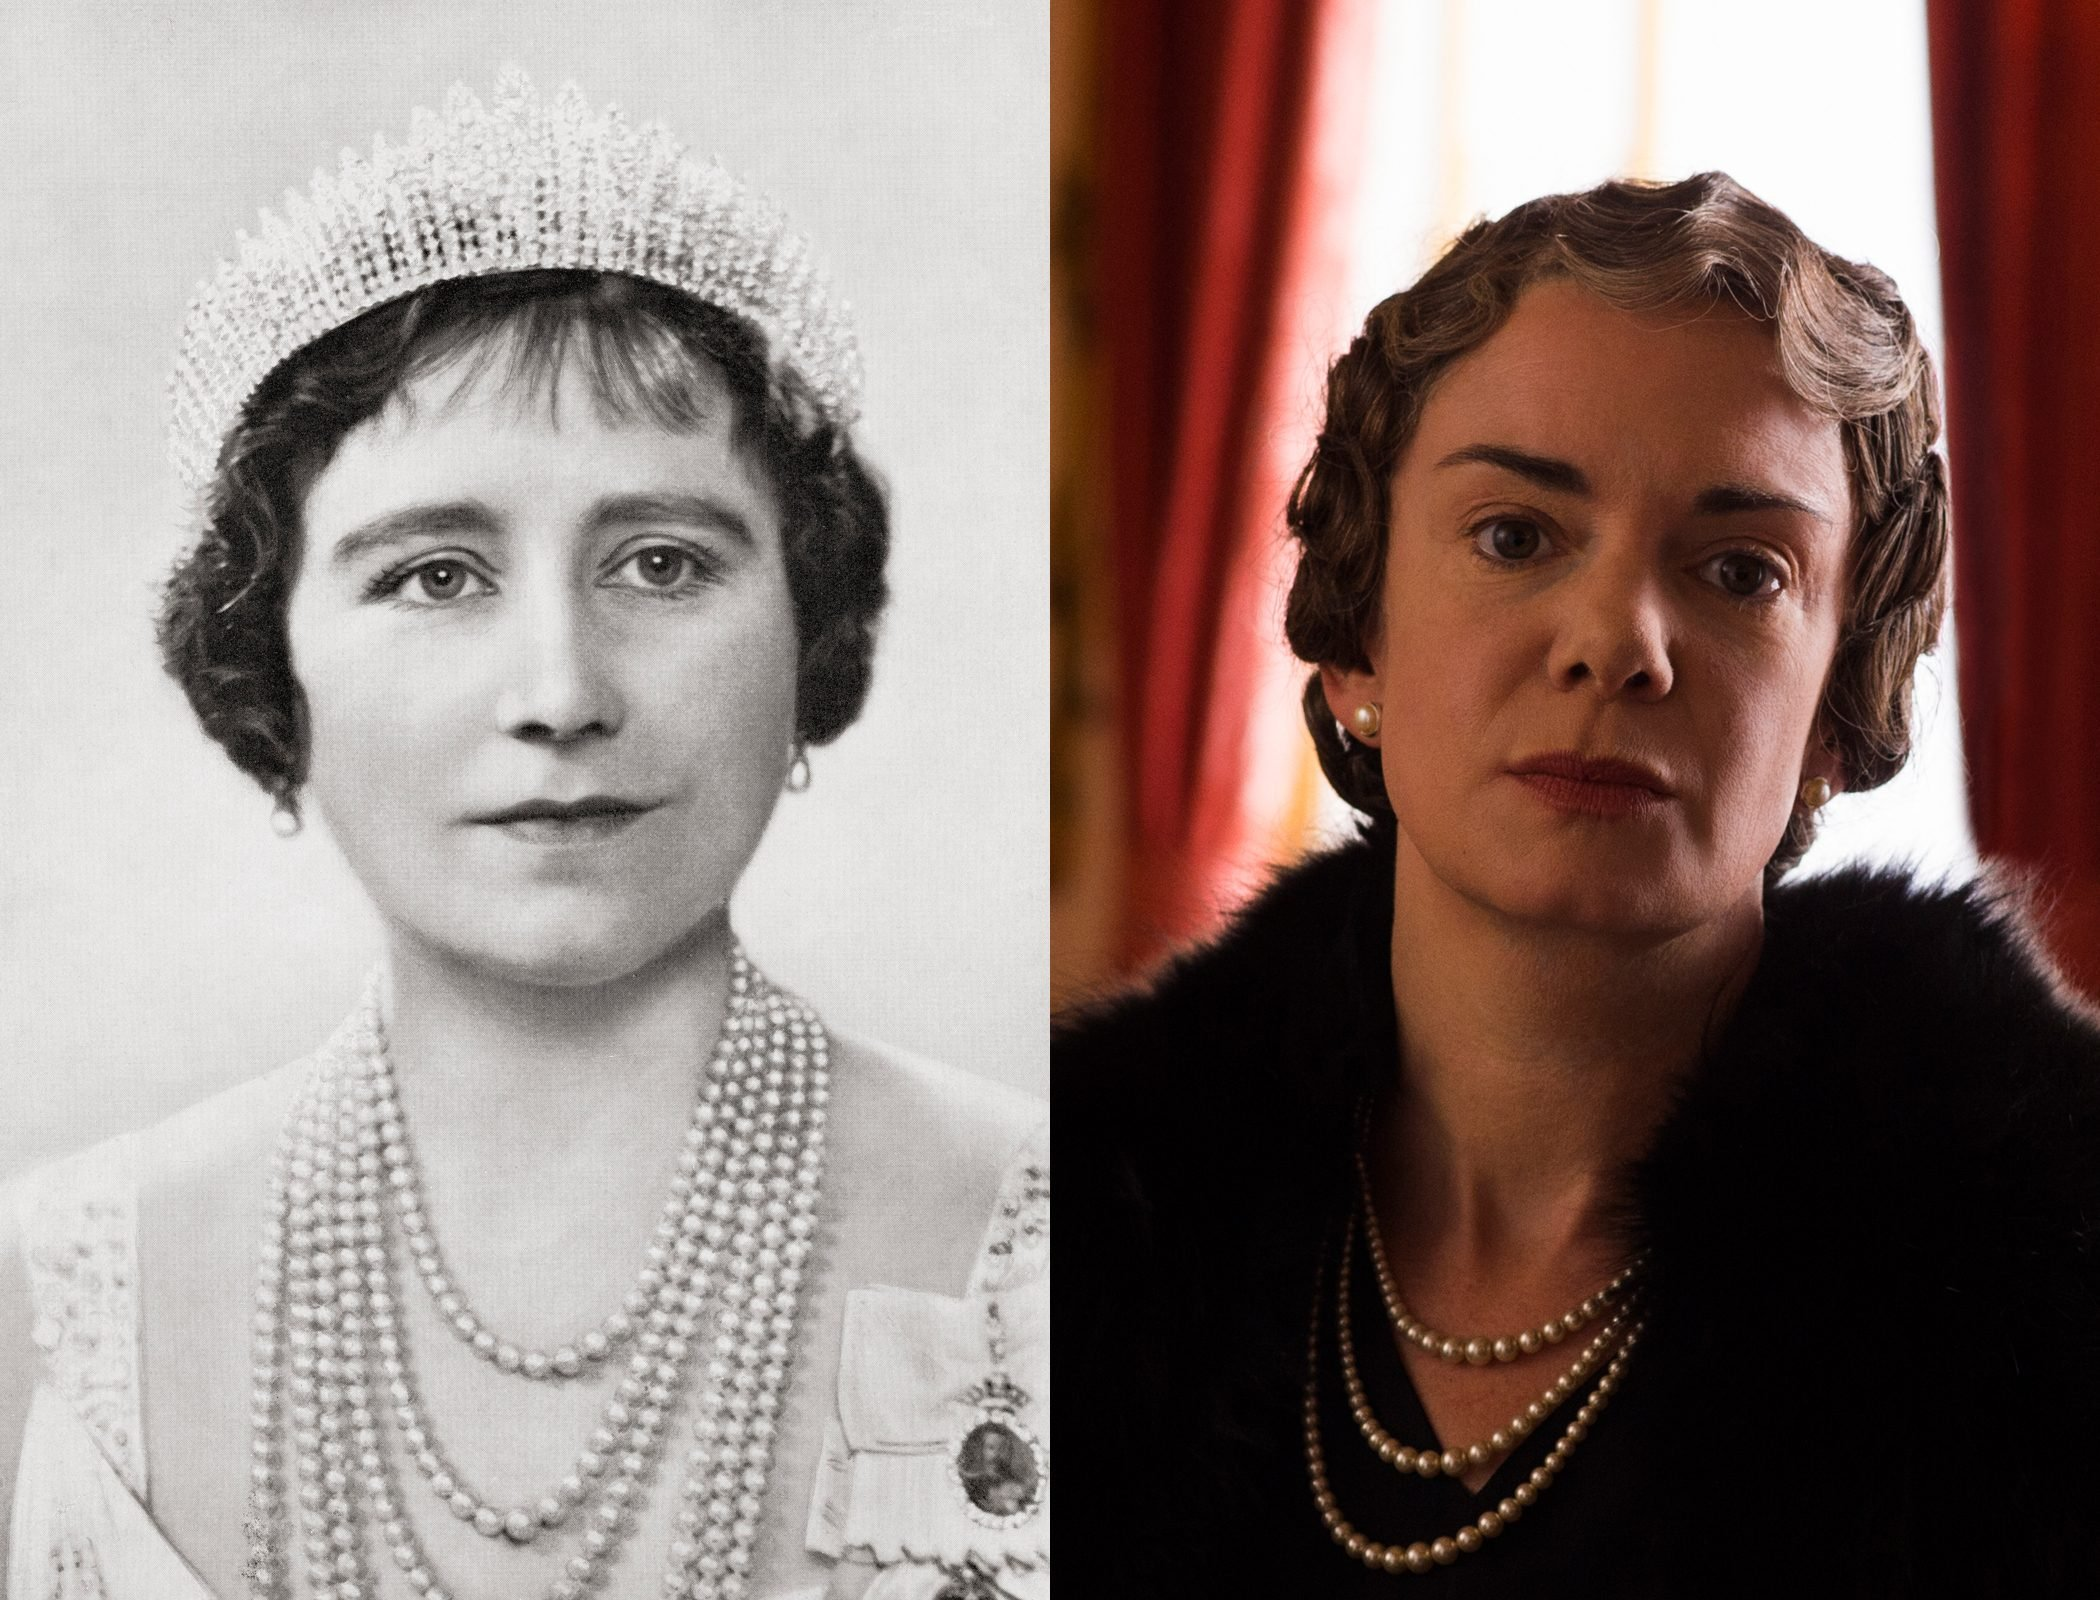 The Queen Consort, Queen Elizabeth, and later, the Queen Mother, as played by Victoria Hamilton